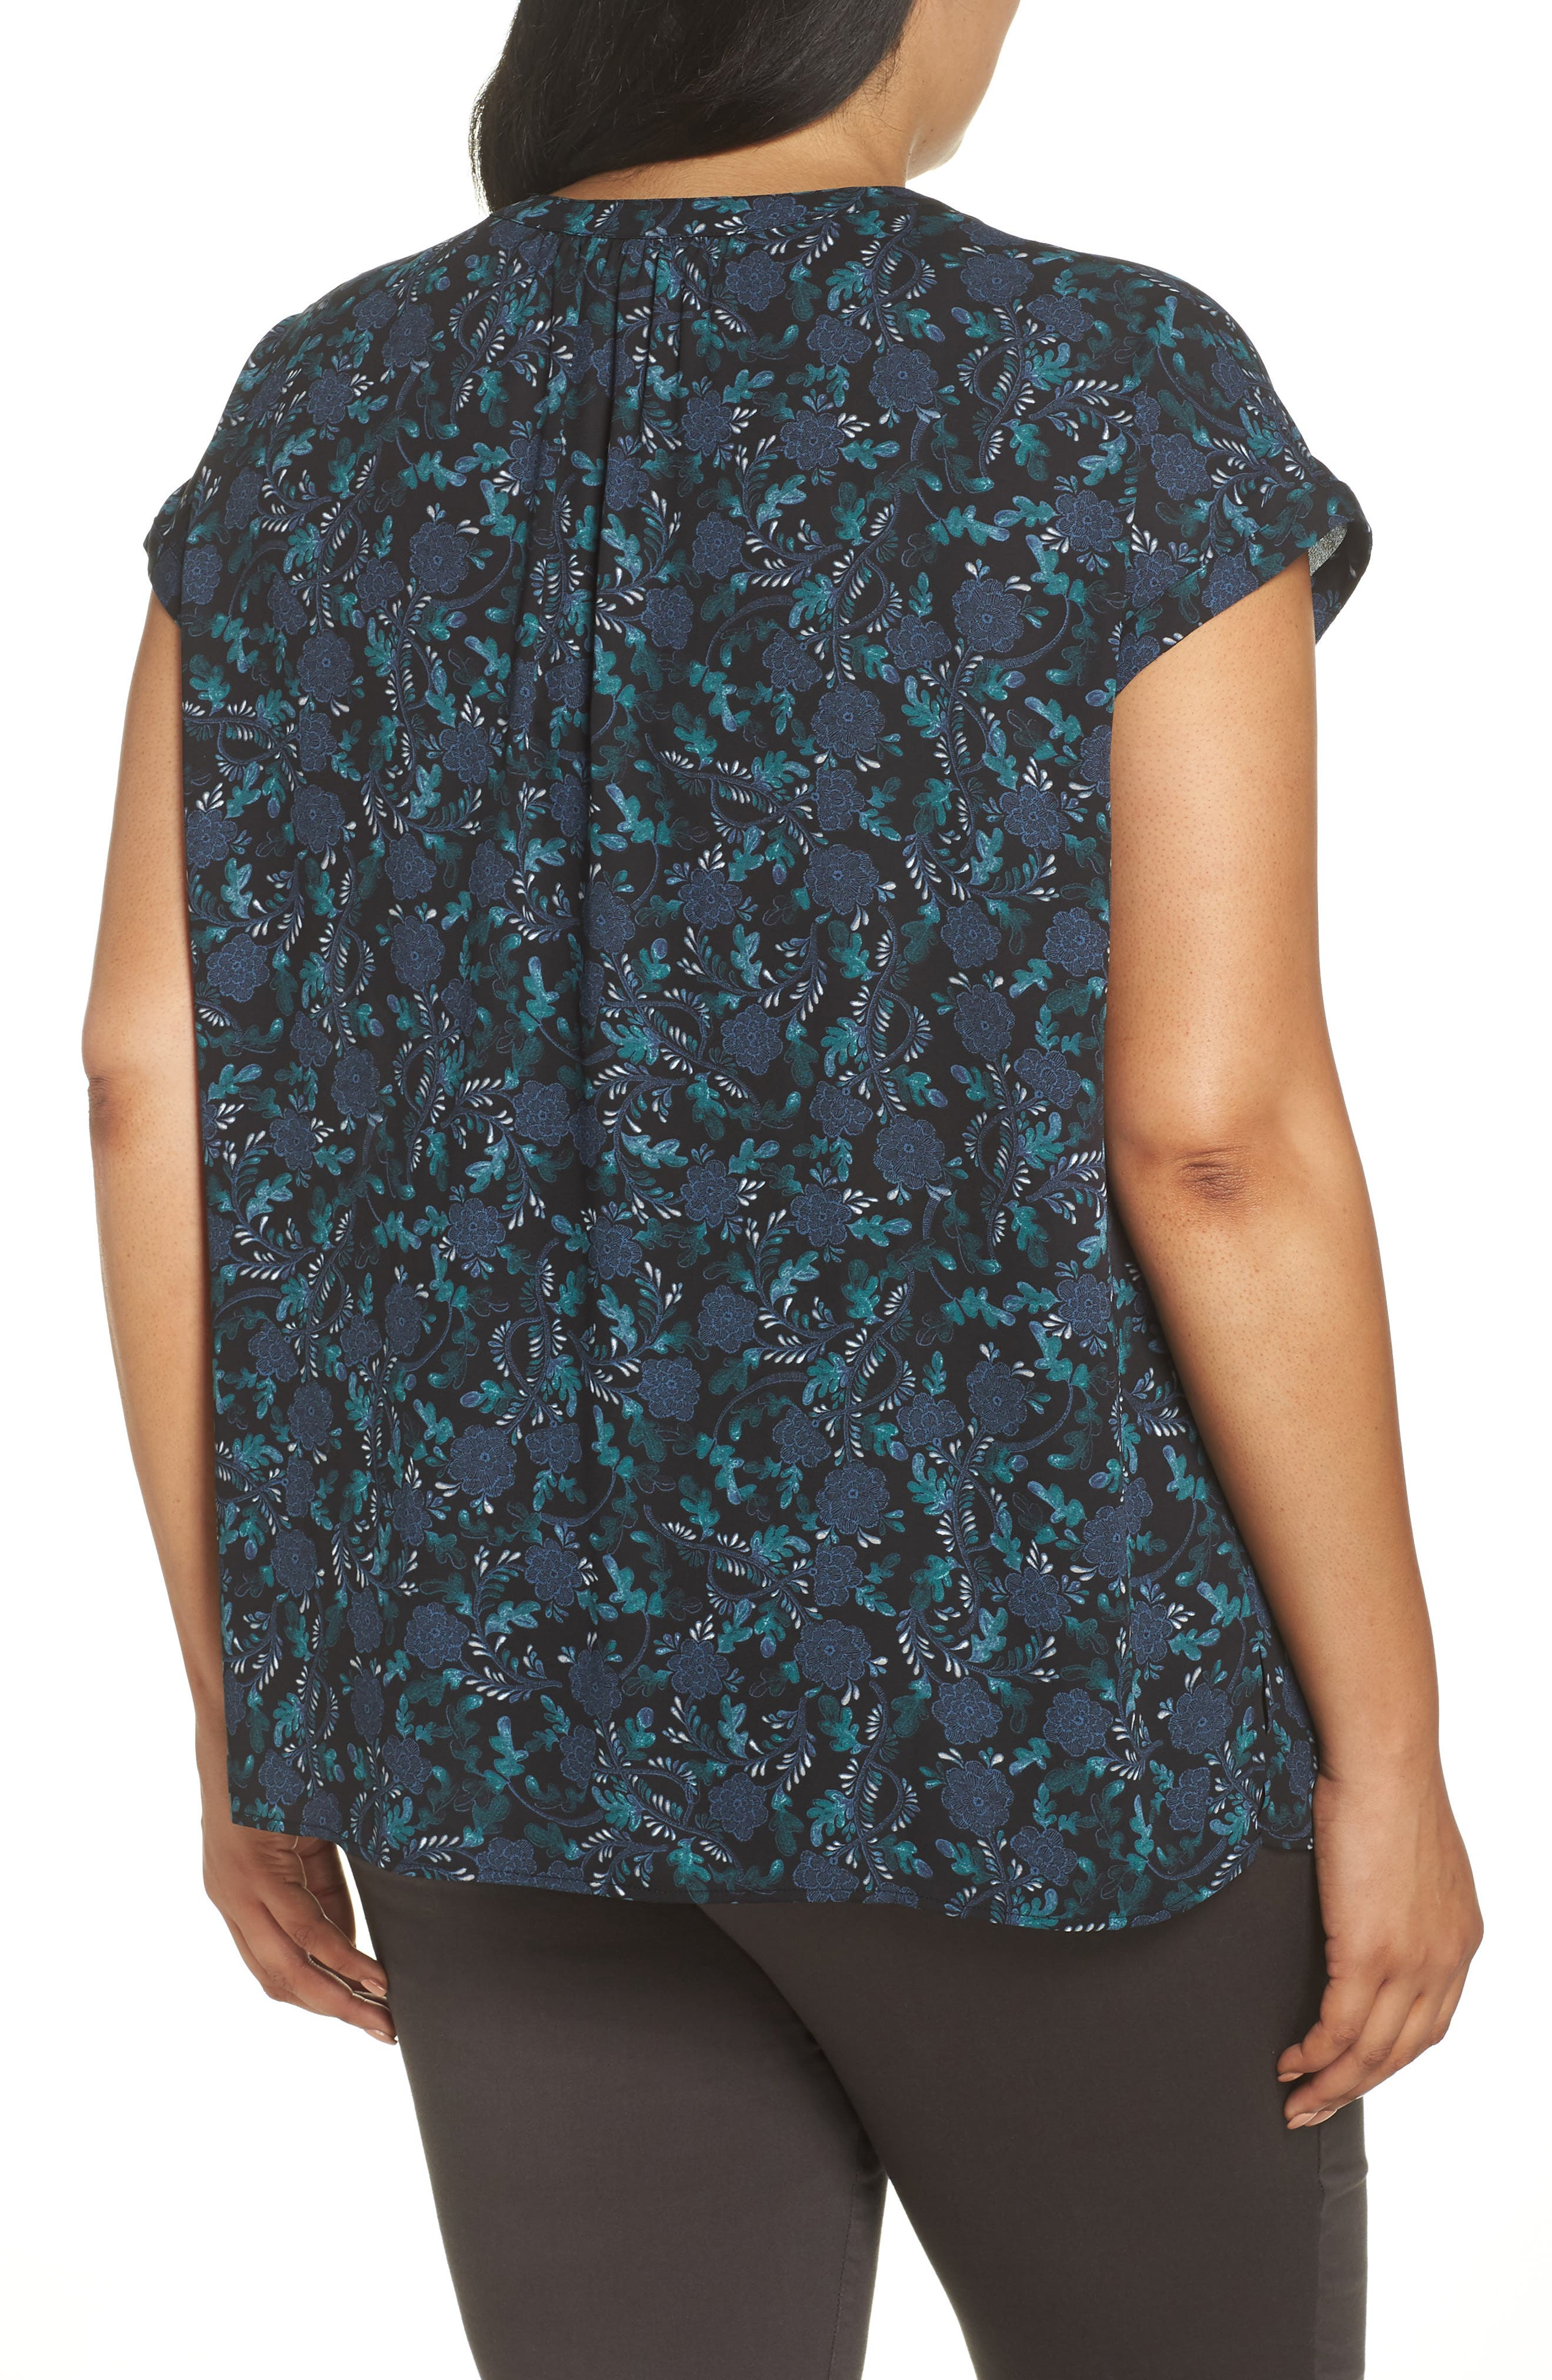 Gathered Neck Button Down Top,                             Alternate thumbnail 2, color,                             BLACK- GREEN FLORAL PRINT